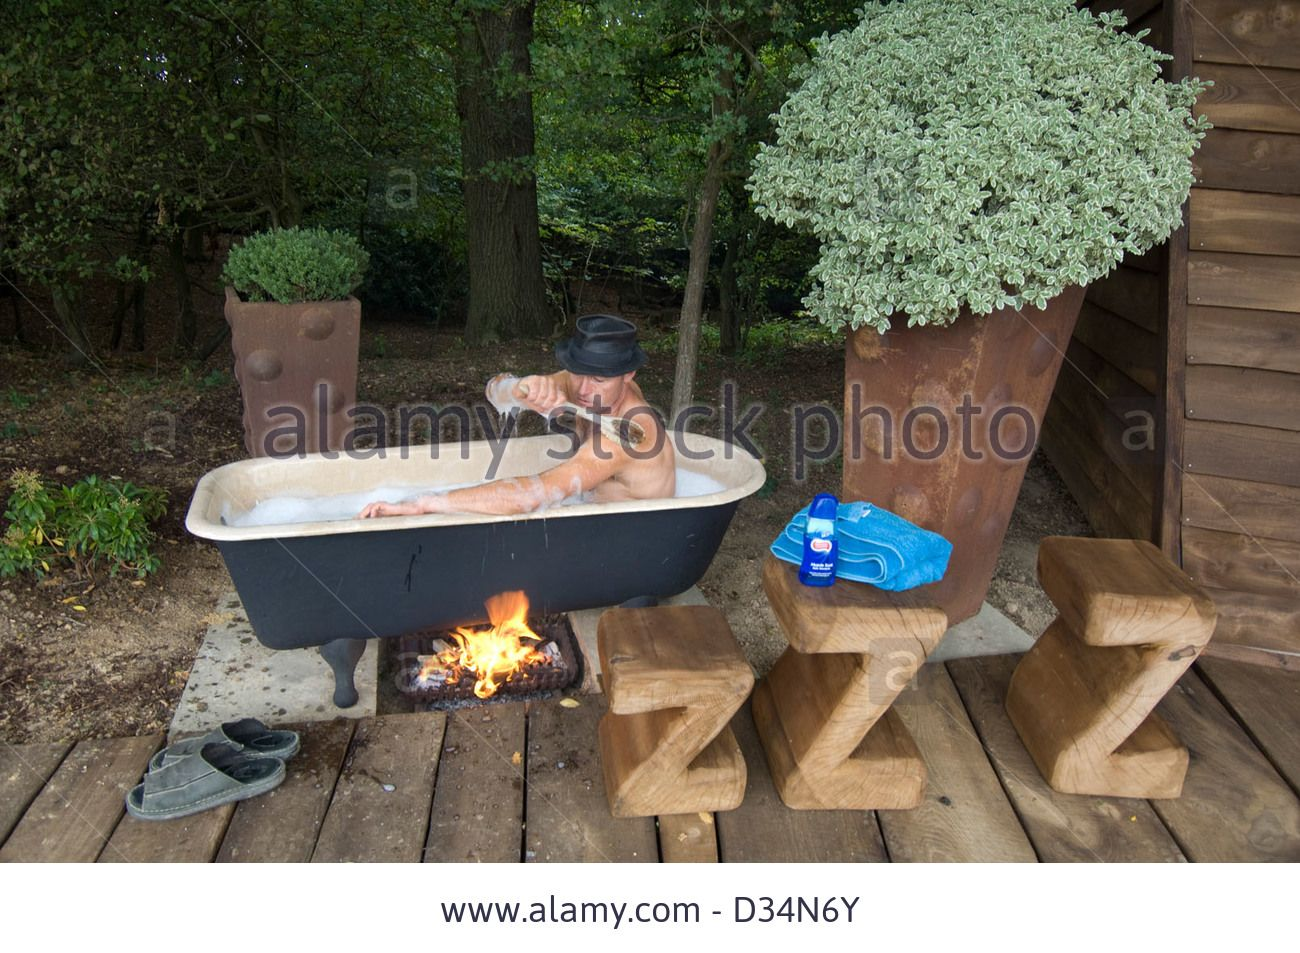 fire heated bath google search backyard hot tub. Black Bedroom Furniture Sets. Home Design Ideas